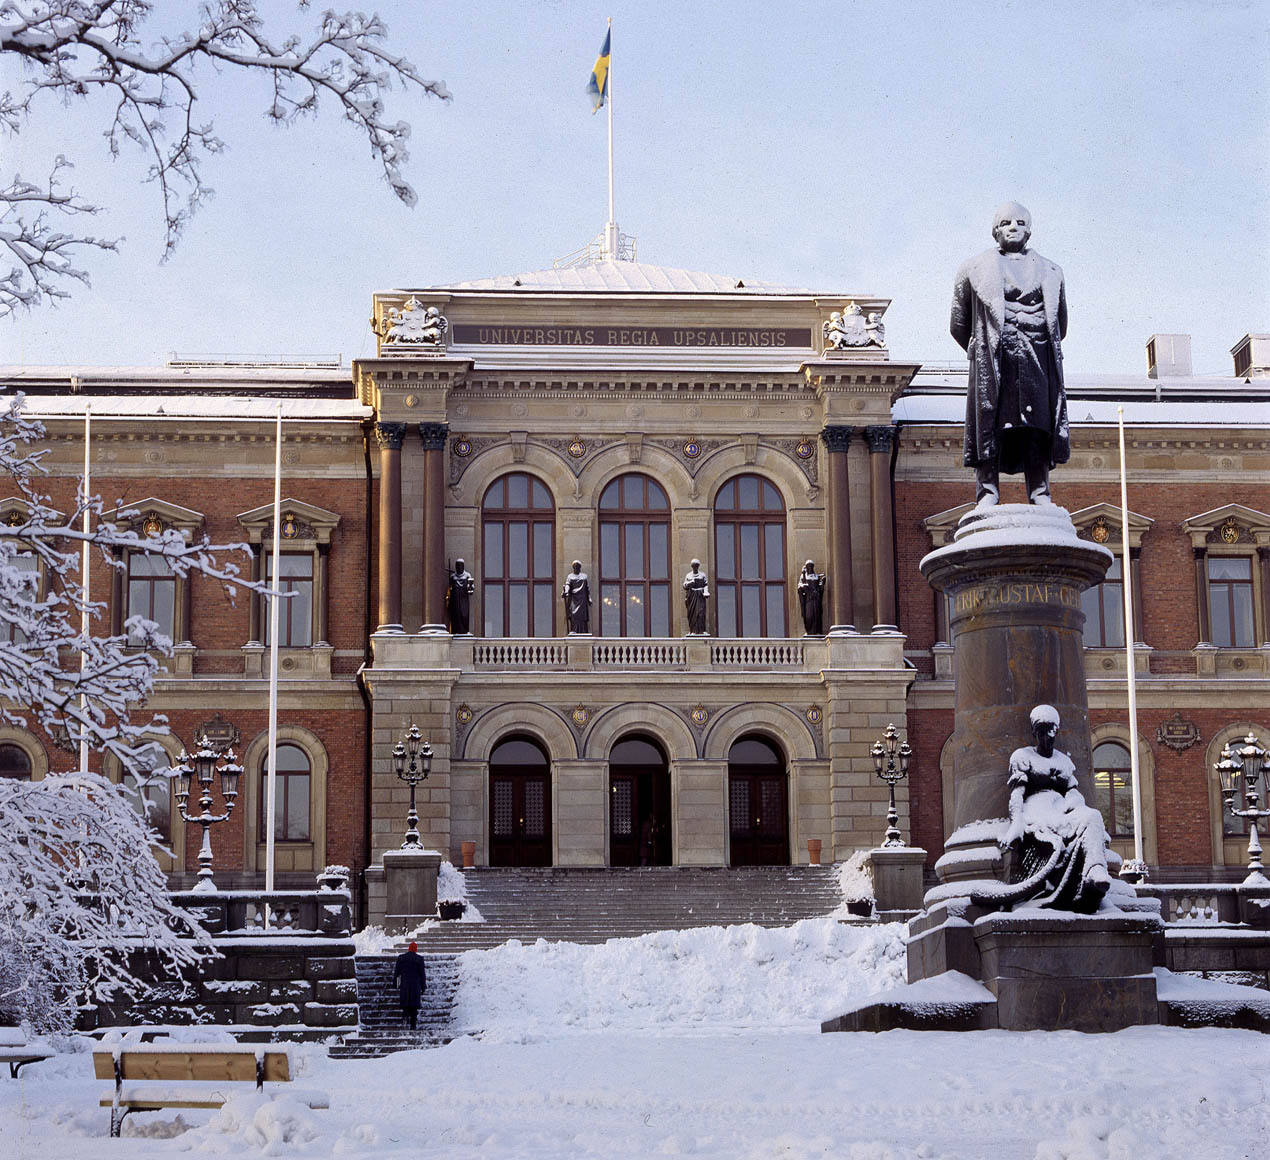 Uppsala University building covered in snow